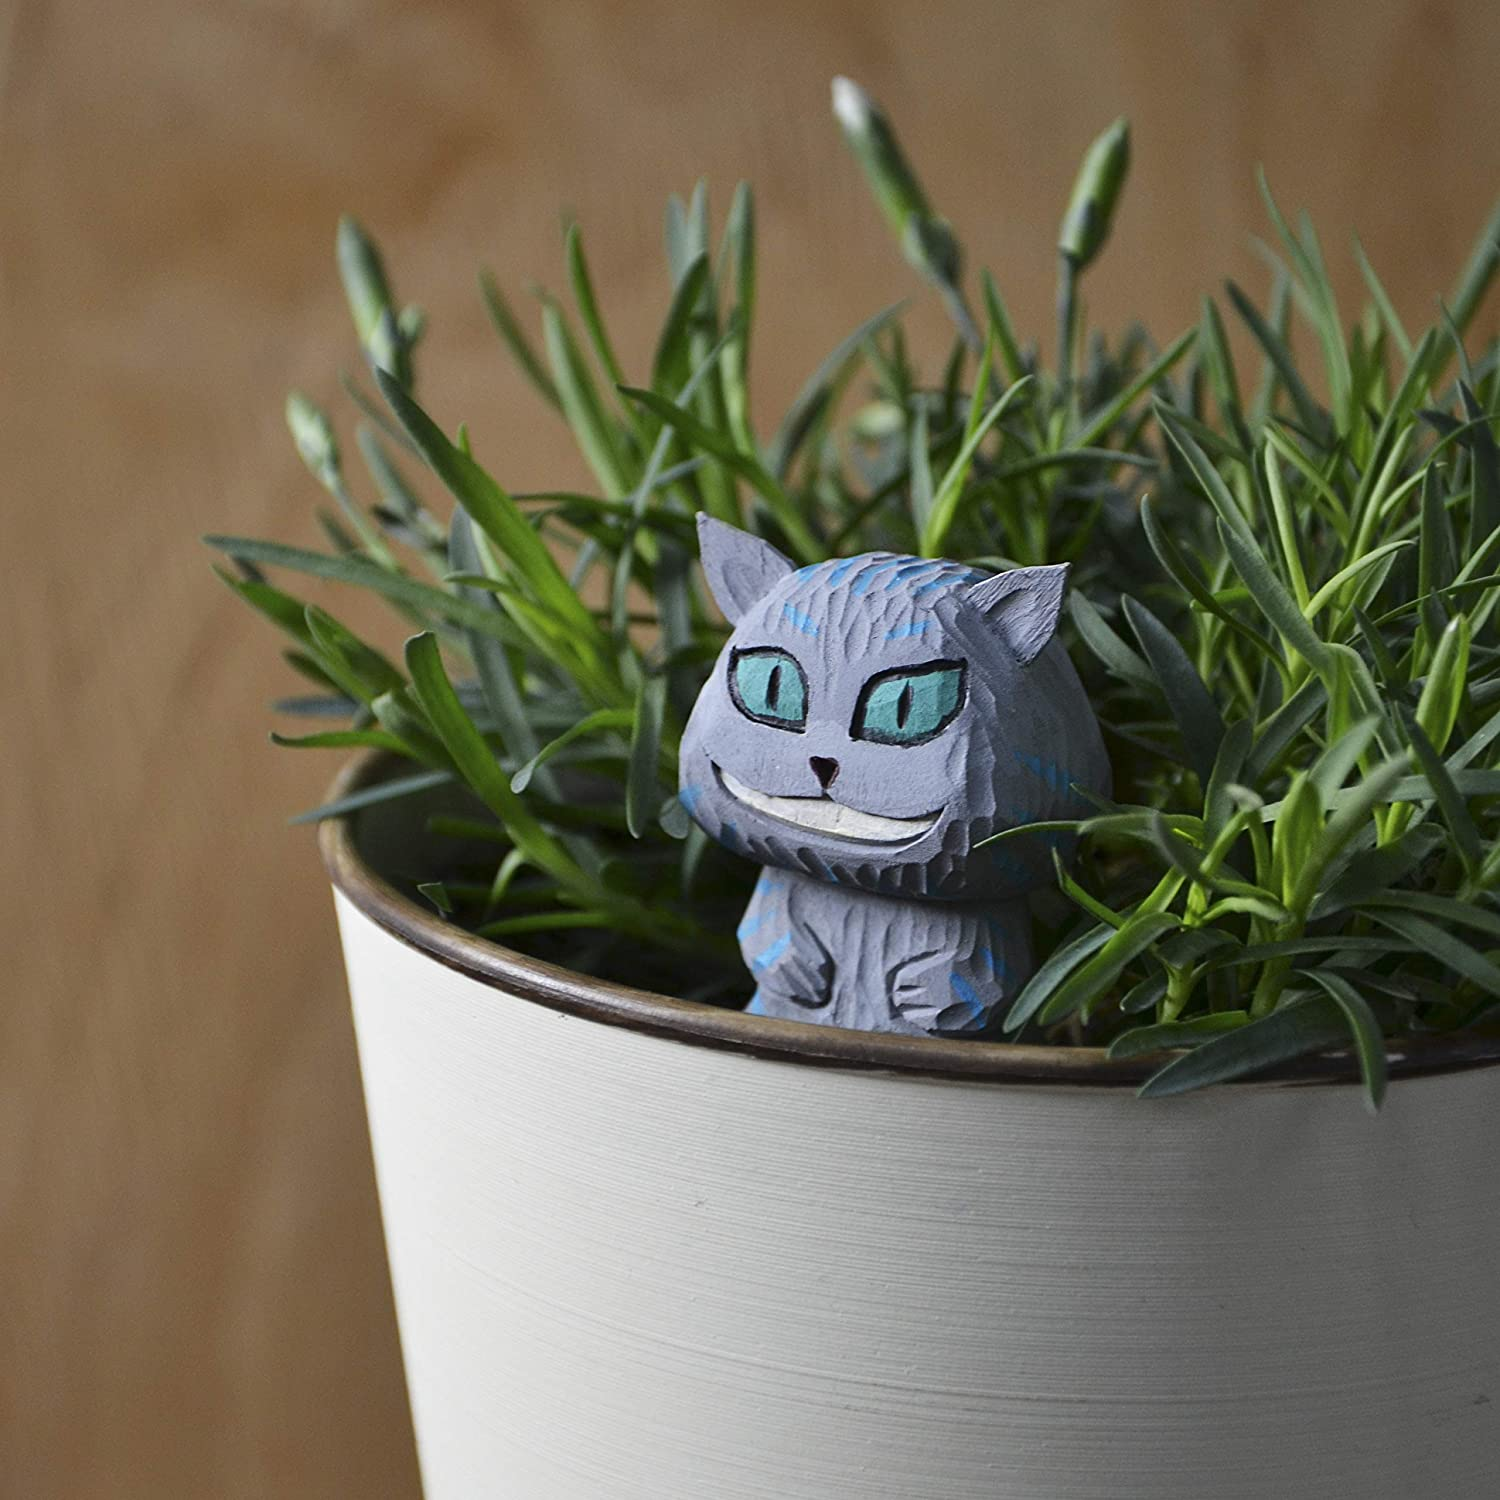 Cheshire Cat Mini Wood Landscape Figure Alice in Wonderland Handmade Mini Garden Decoration on Metallic Stake The Best Idea of Potted Plant D/écor Crafr for Home DIY Cute Wood Furniture